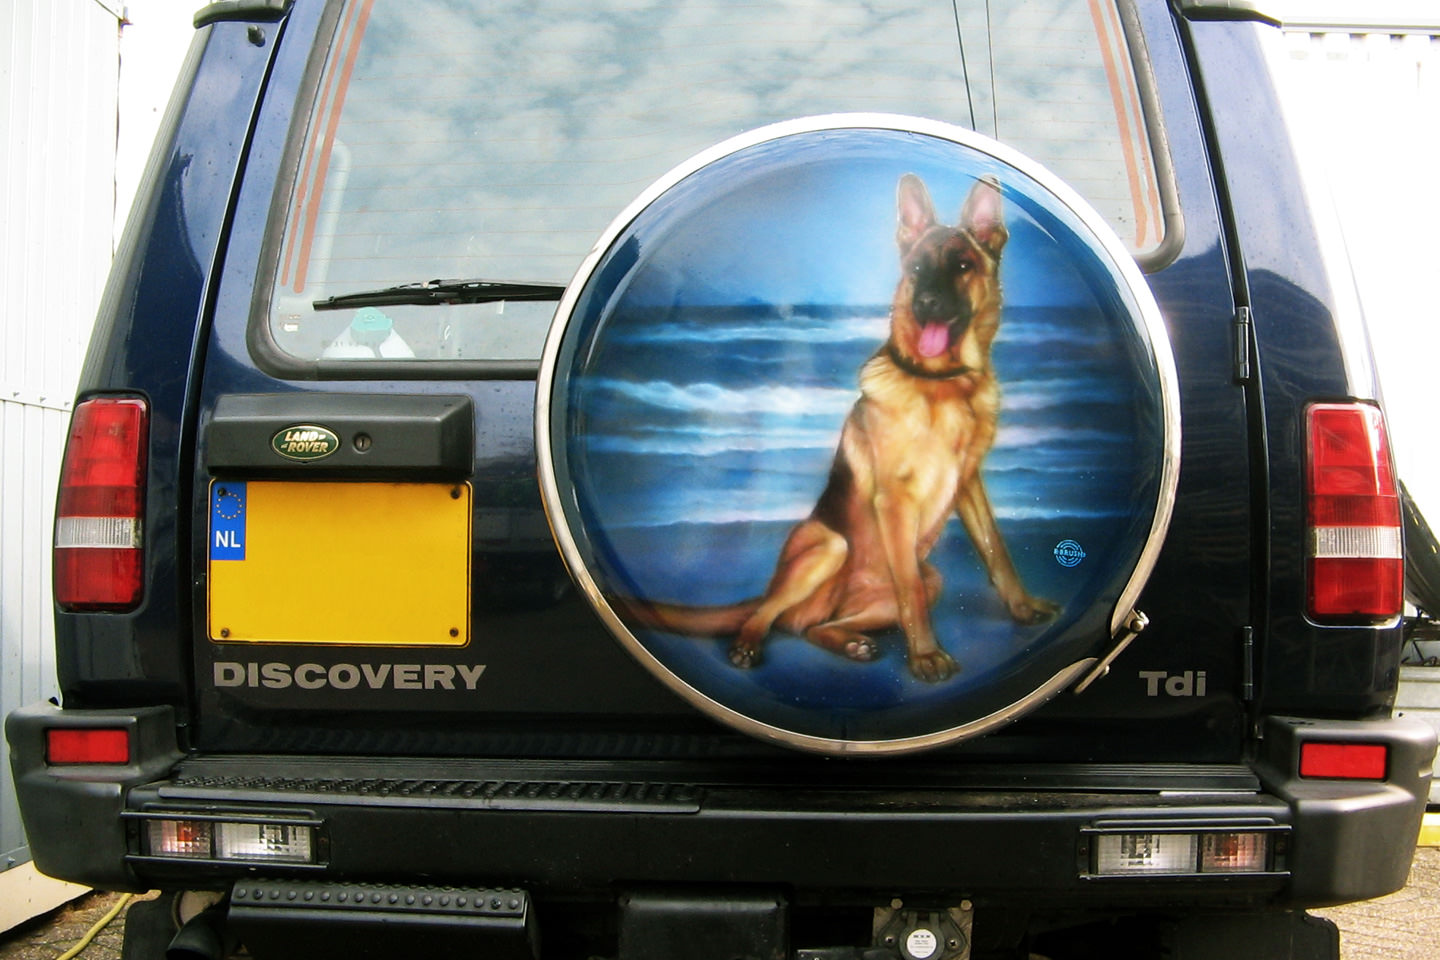 Wheelcover Landrover Discovery schildering herdershond